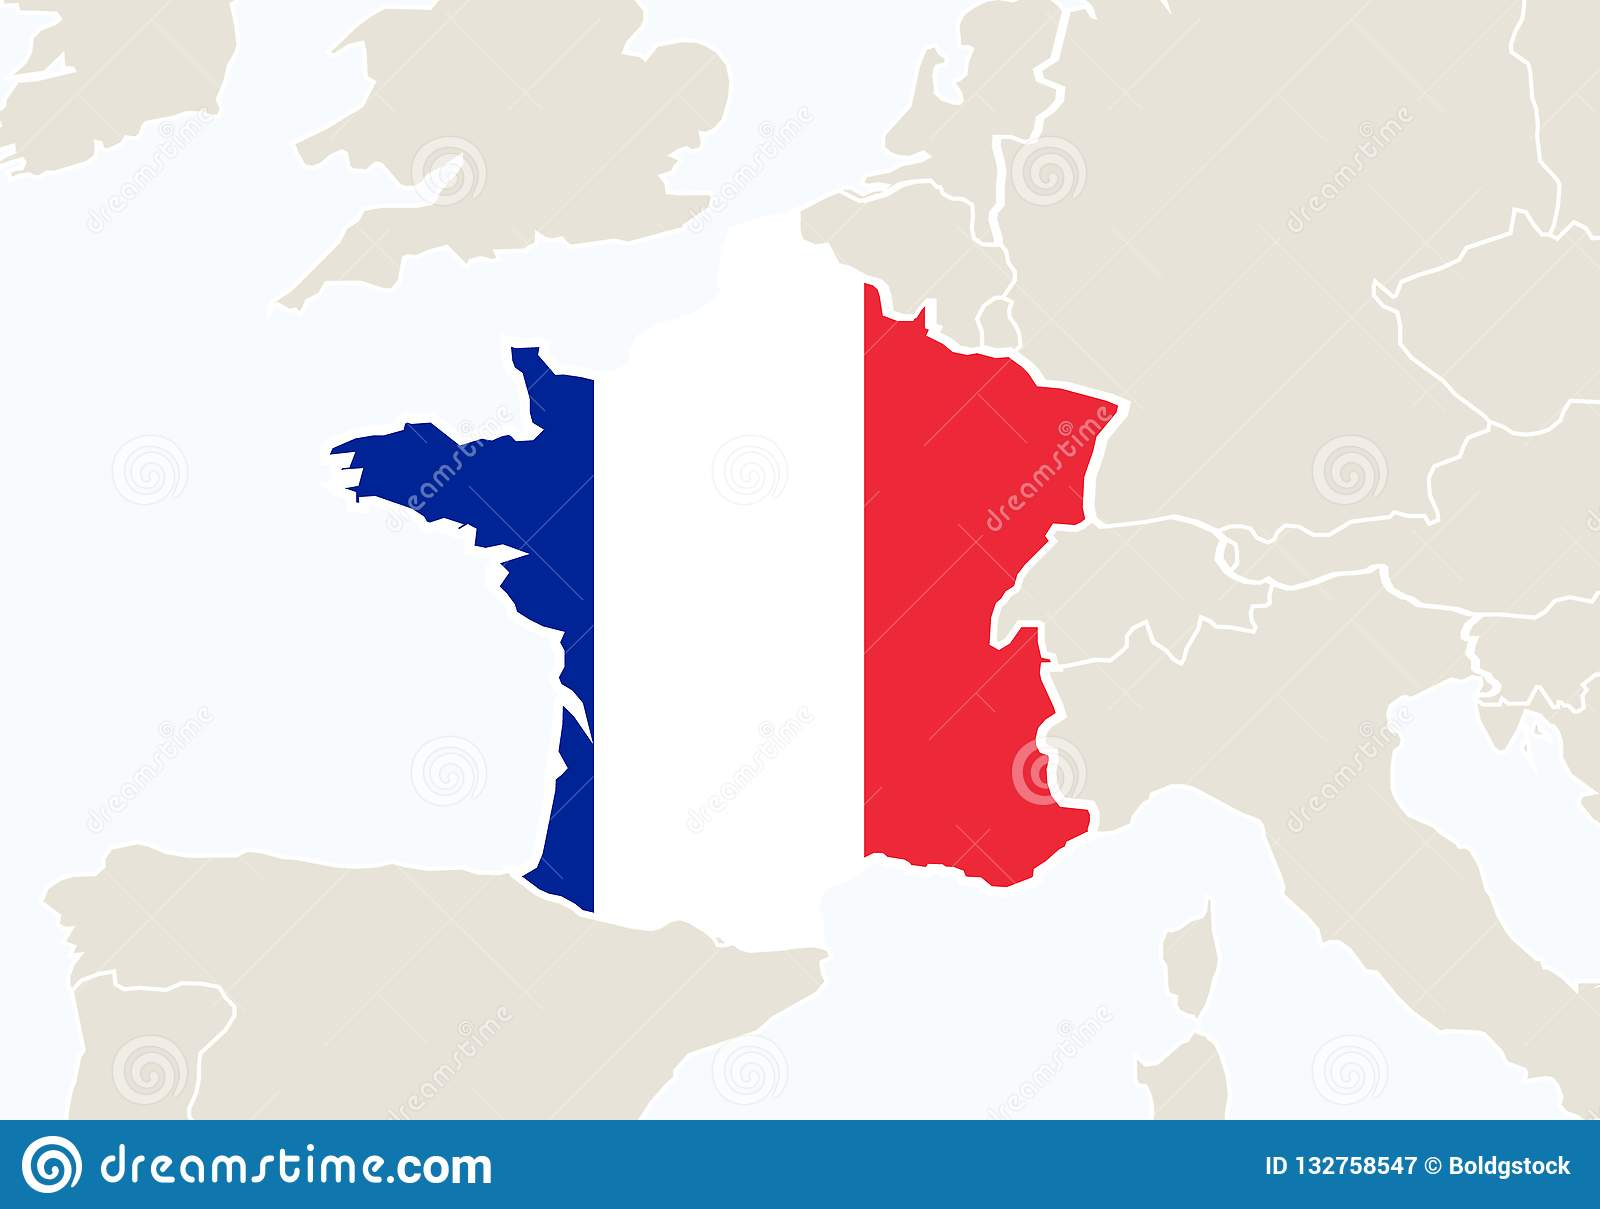 Information And Map Of France on philippines map information, sweden map information, ancient greece map information, florida map information,